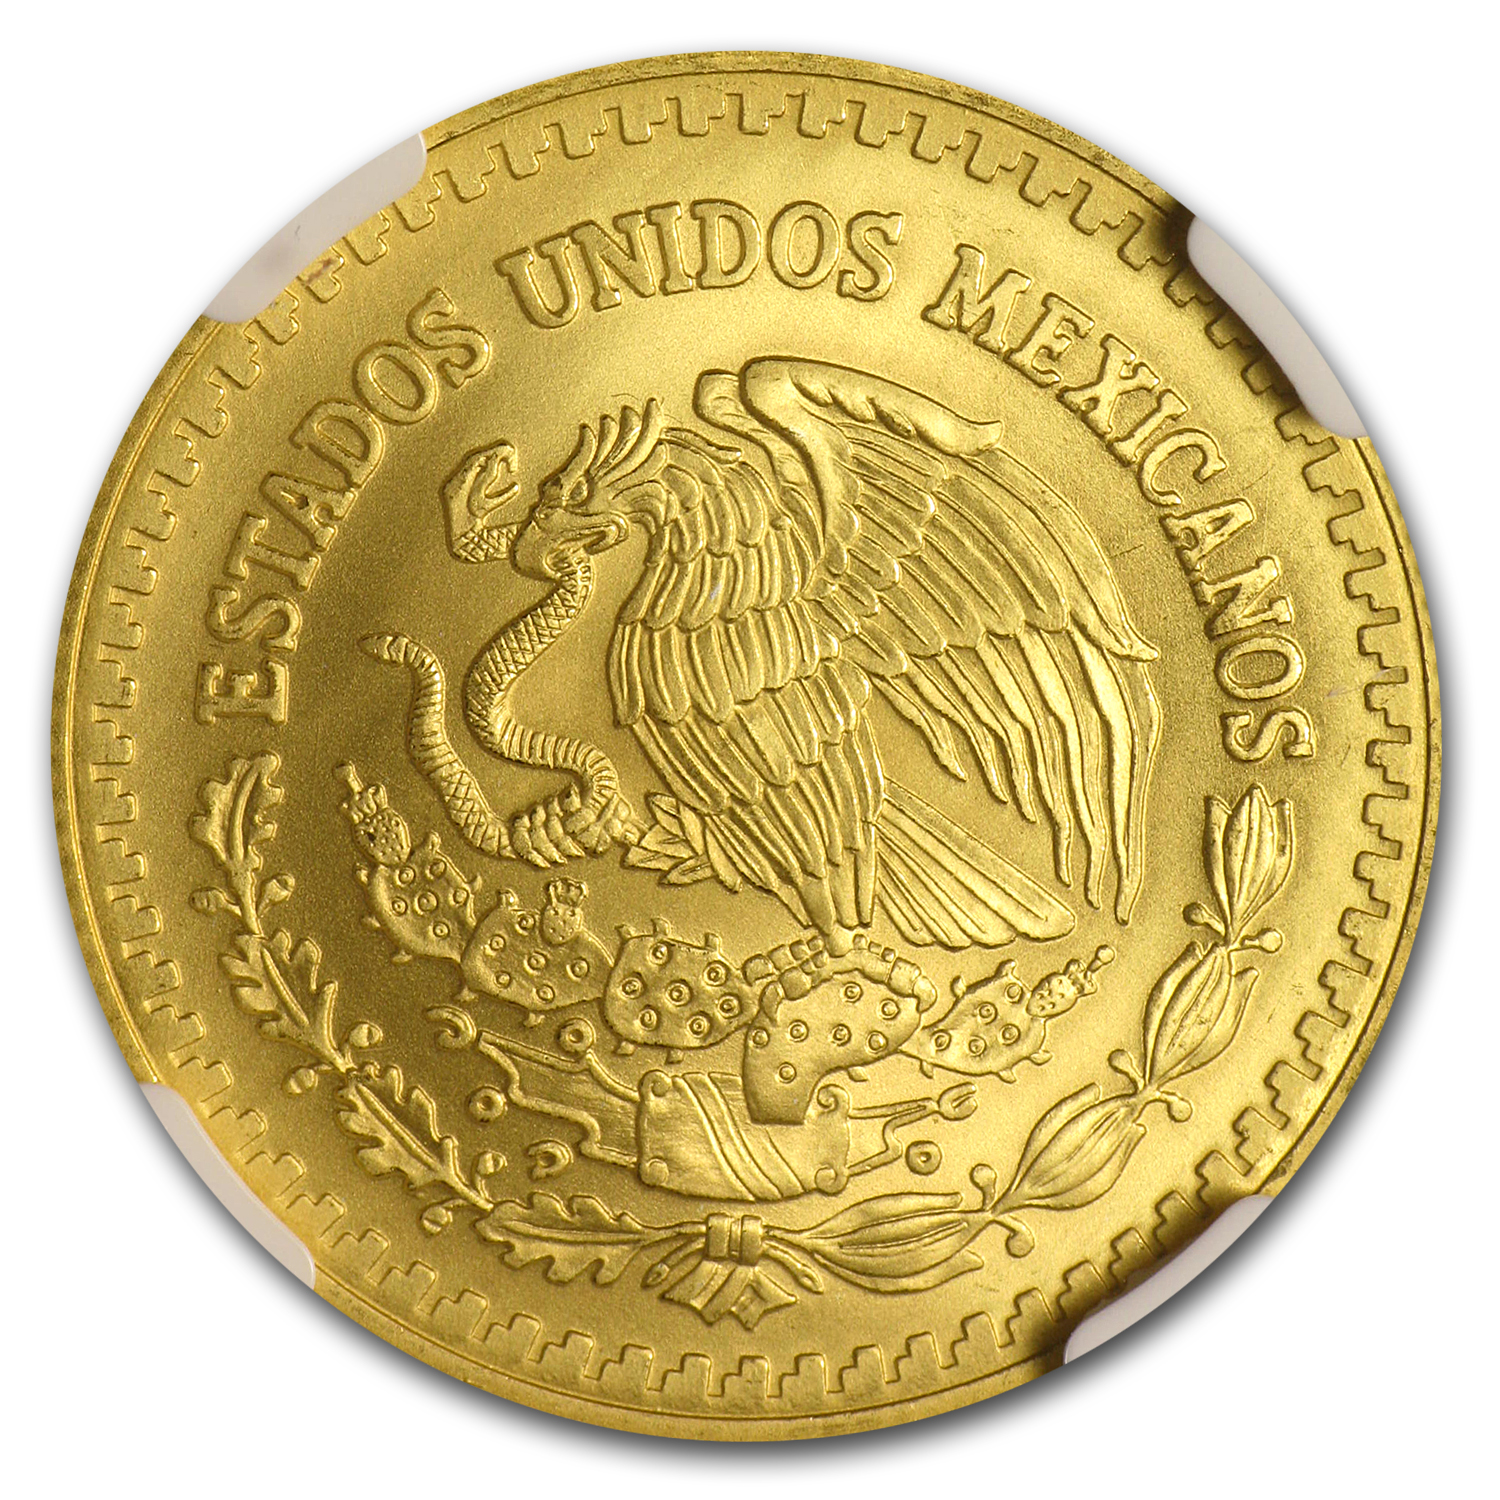 2007 Mexico 1/2 oz Gold Libertad MS-69 NGC